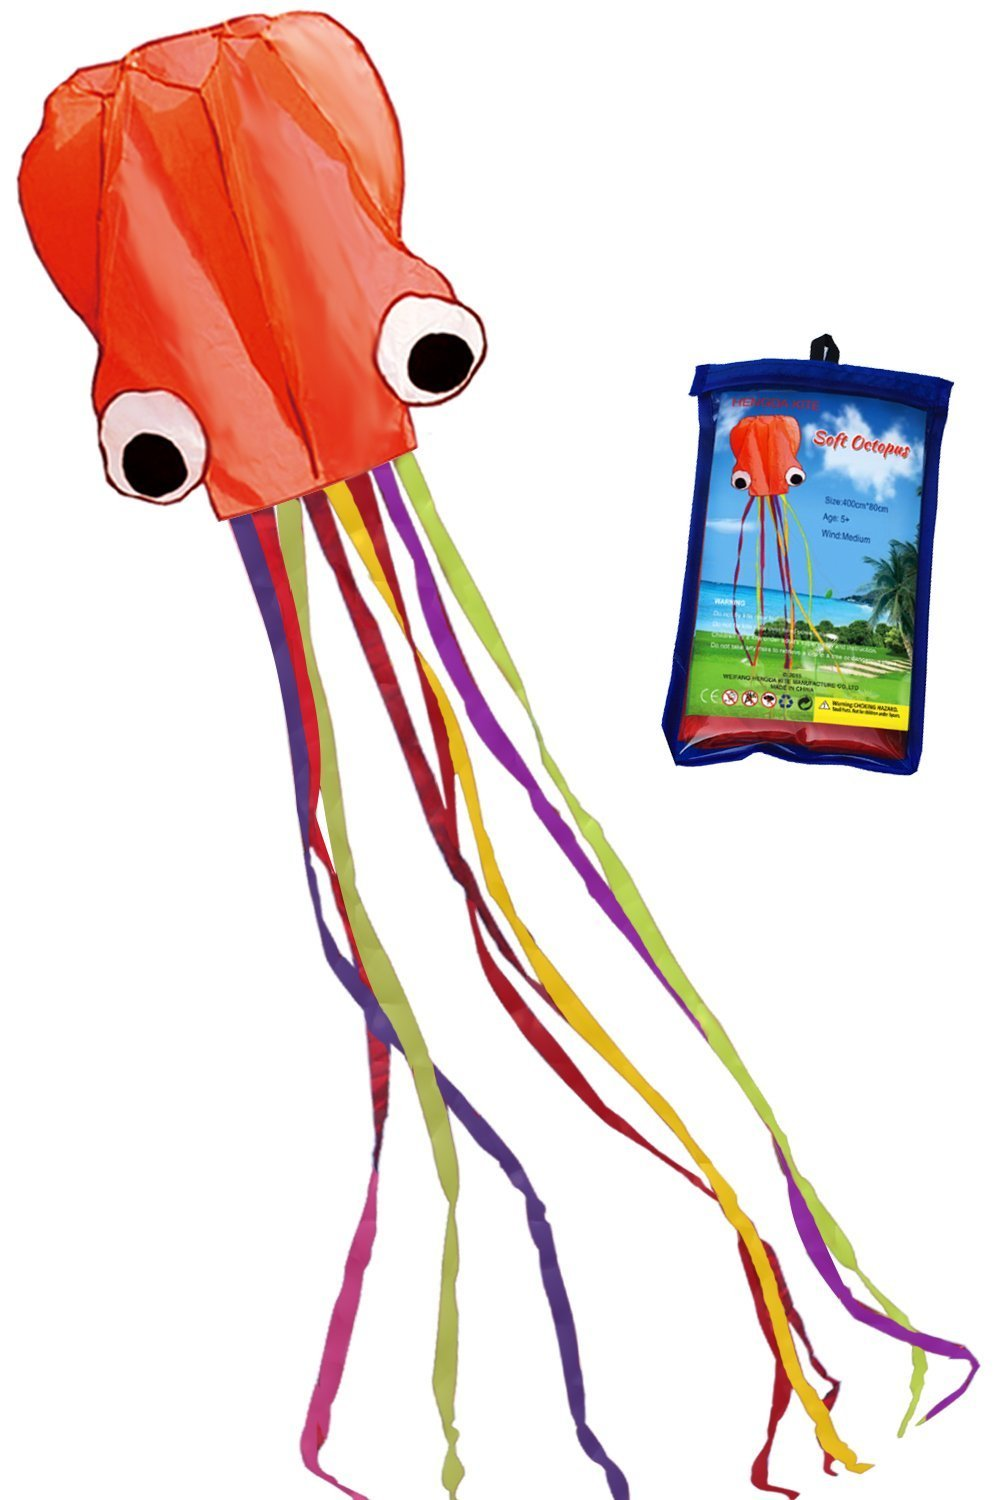 Hengda Kite Software Octopus Flyer Kite with Long Colorful Tail for Kids, 31-Inch Wide x 157-Inch Long, Large, Orange